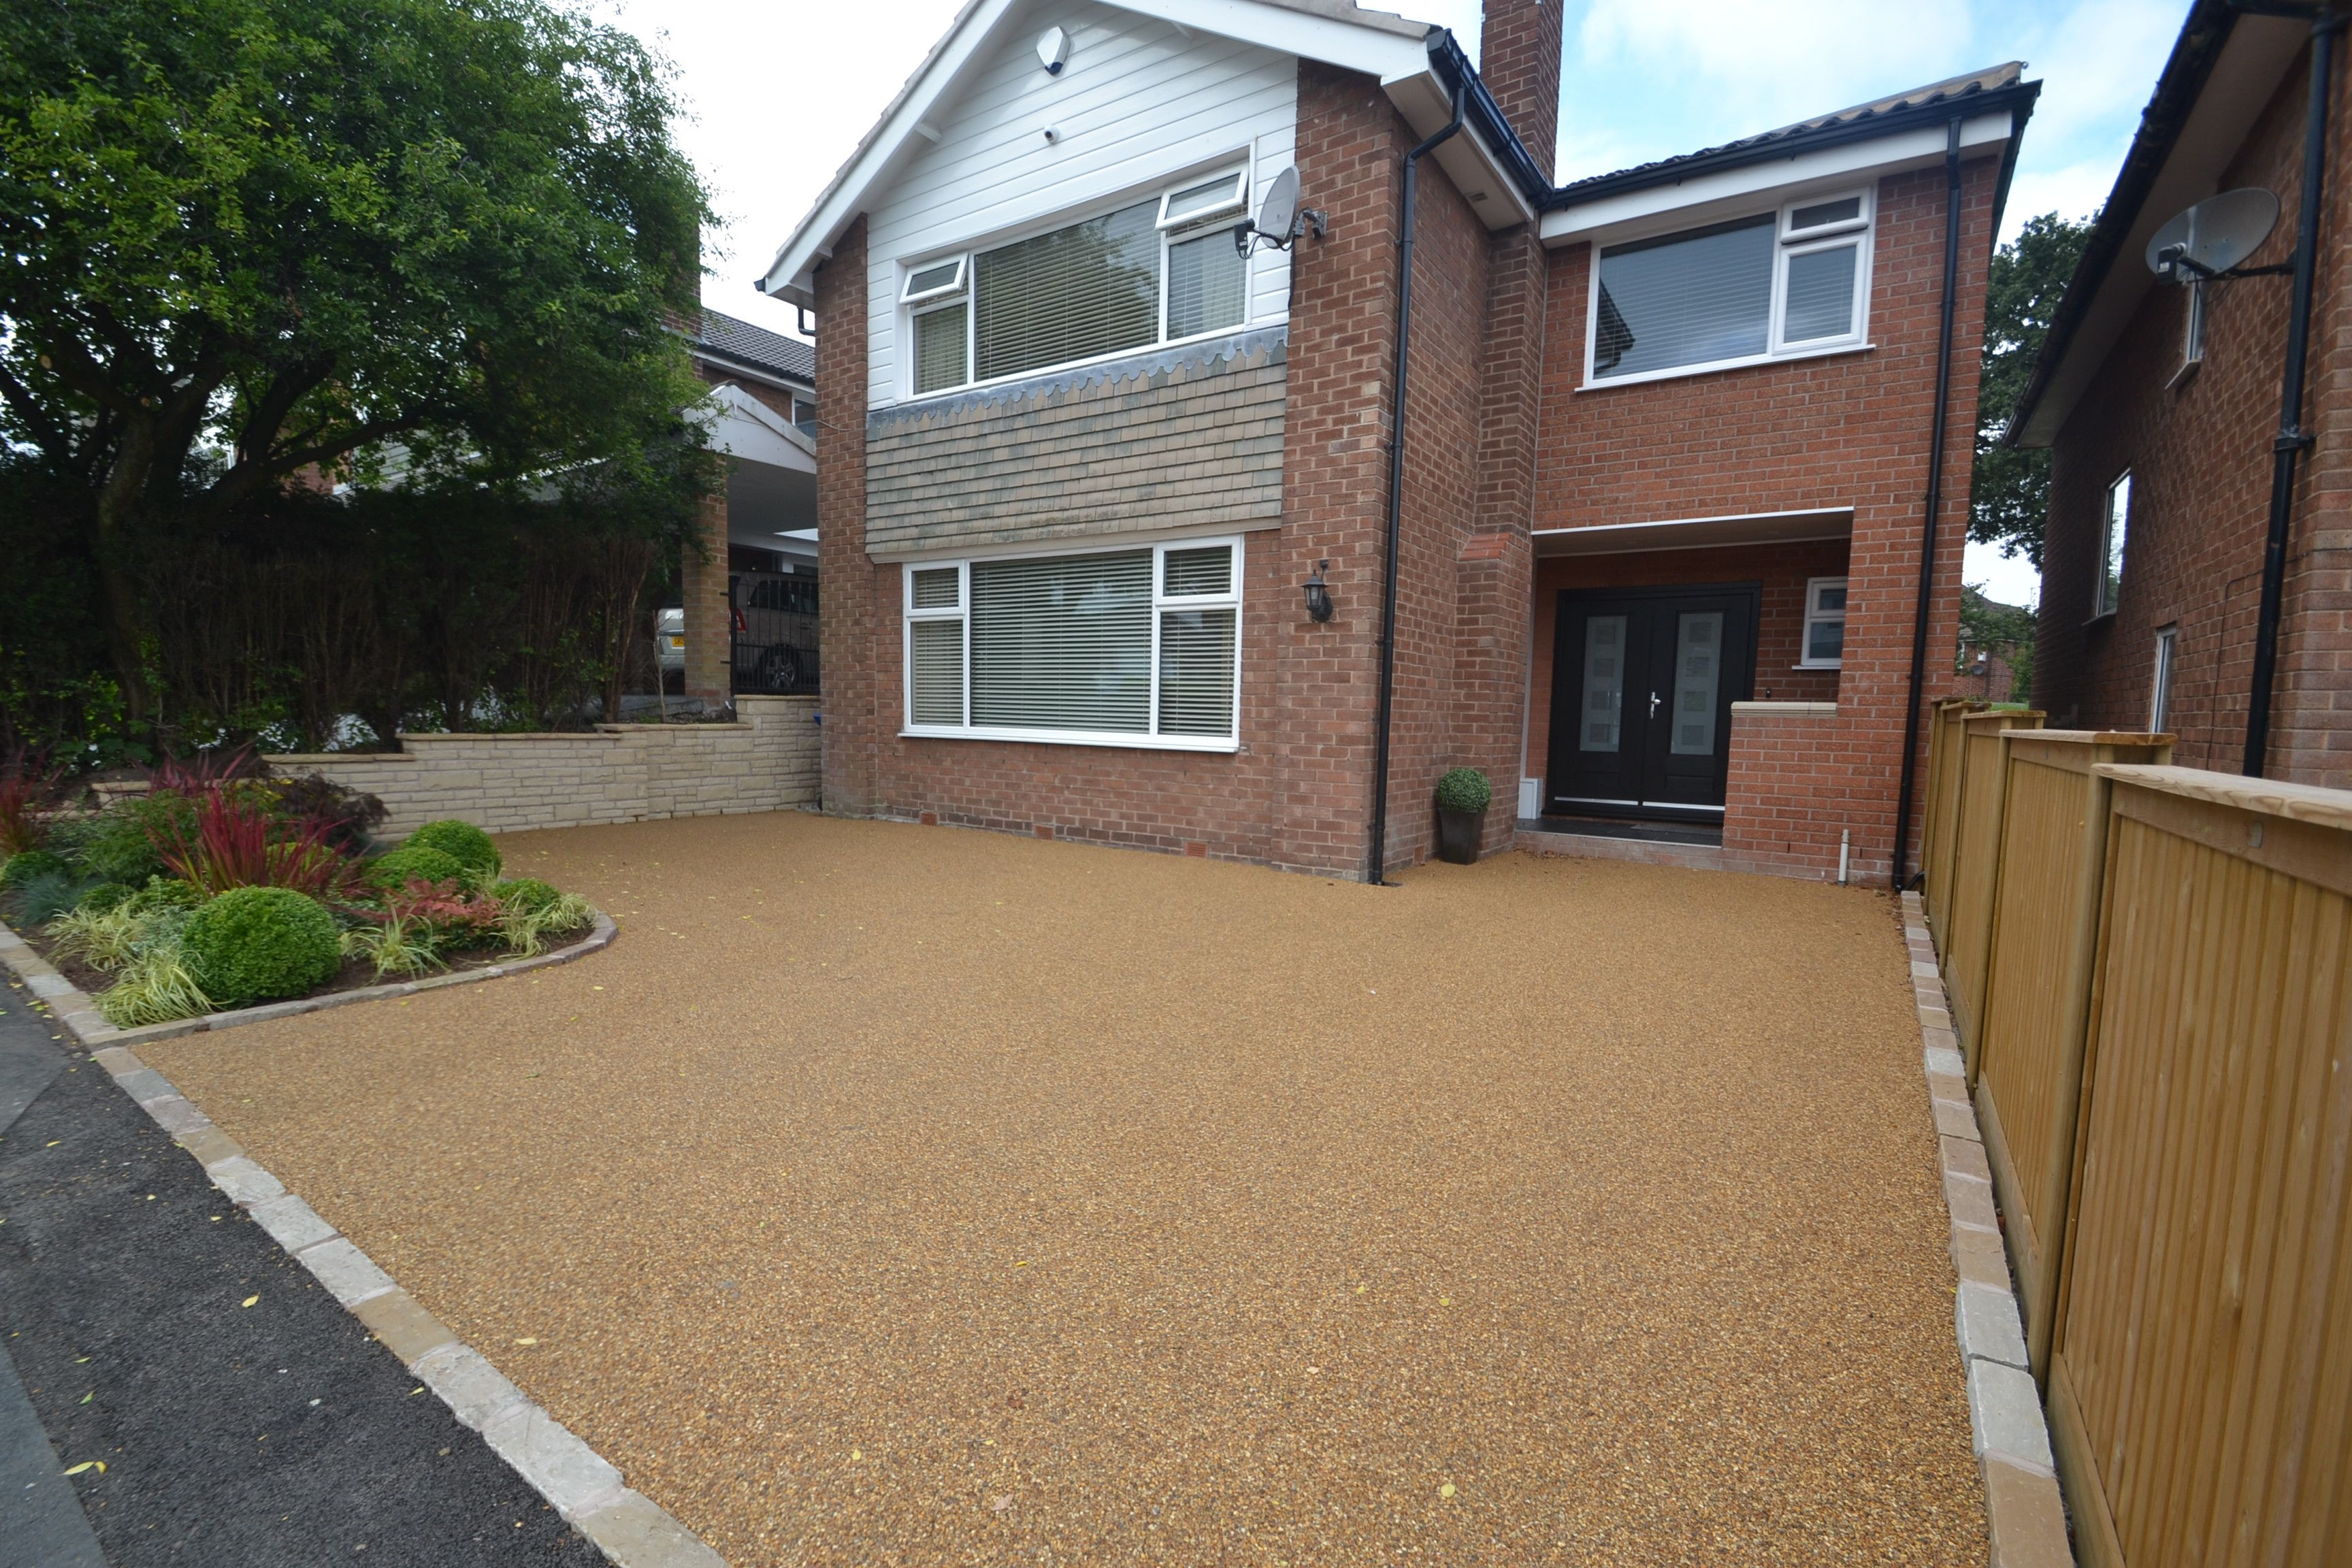 driveways cheshire and garden design cheshire based in bramhall serving cheshire garden and driveway - Garden Design Cheshire